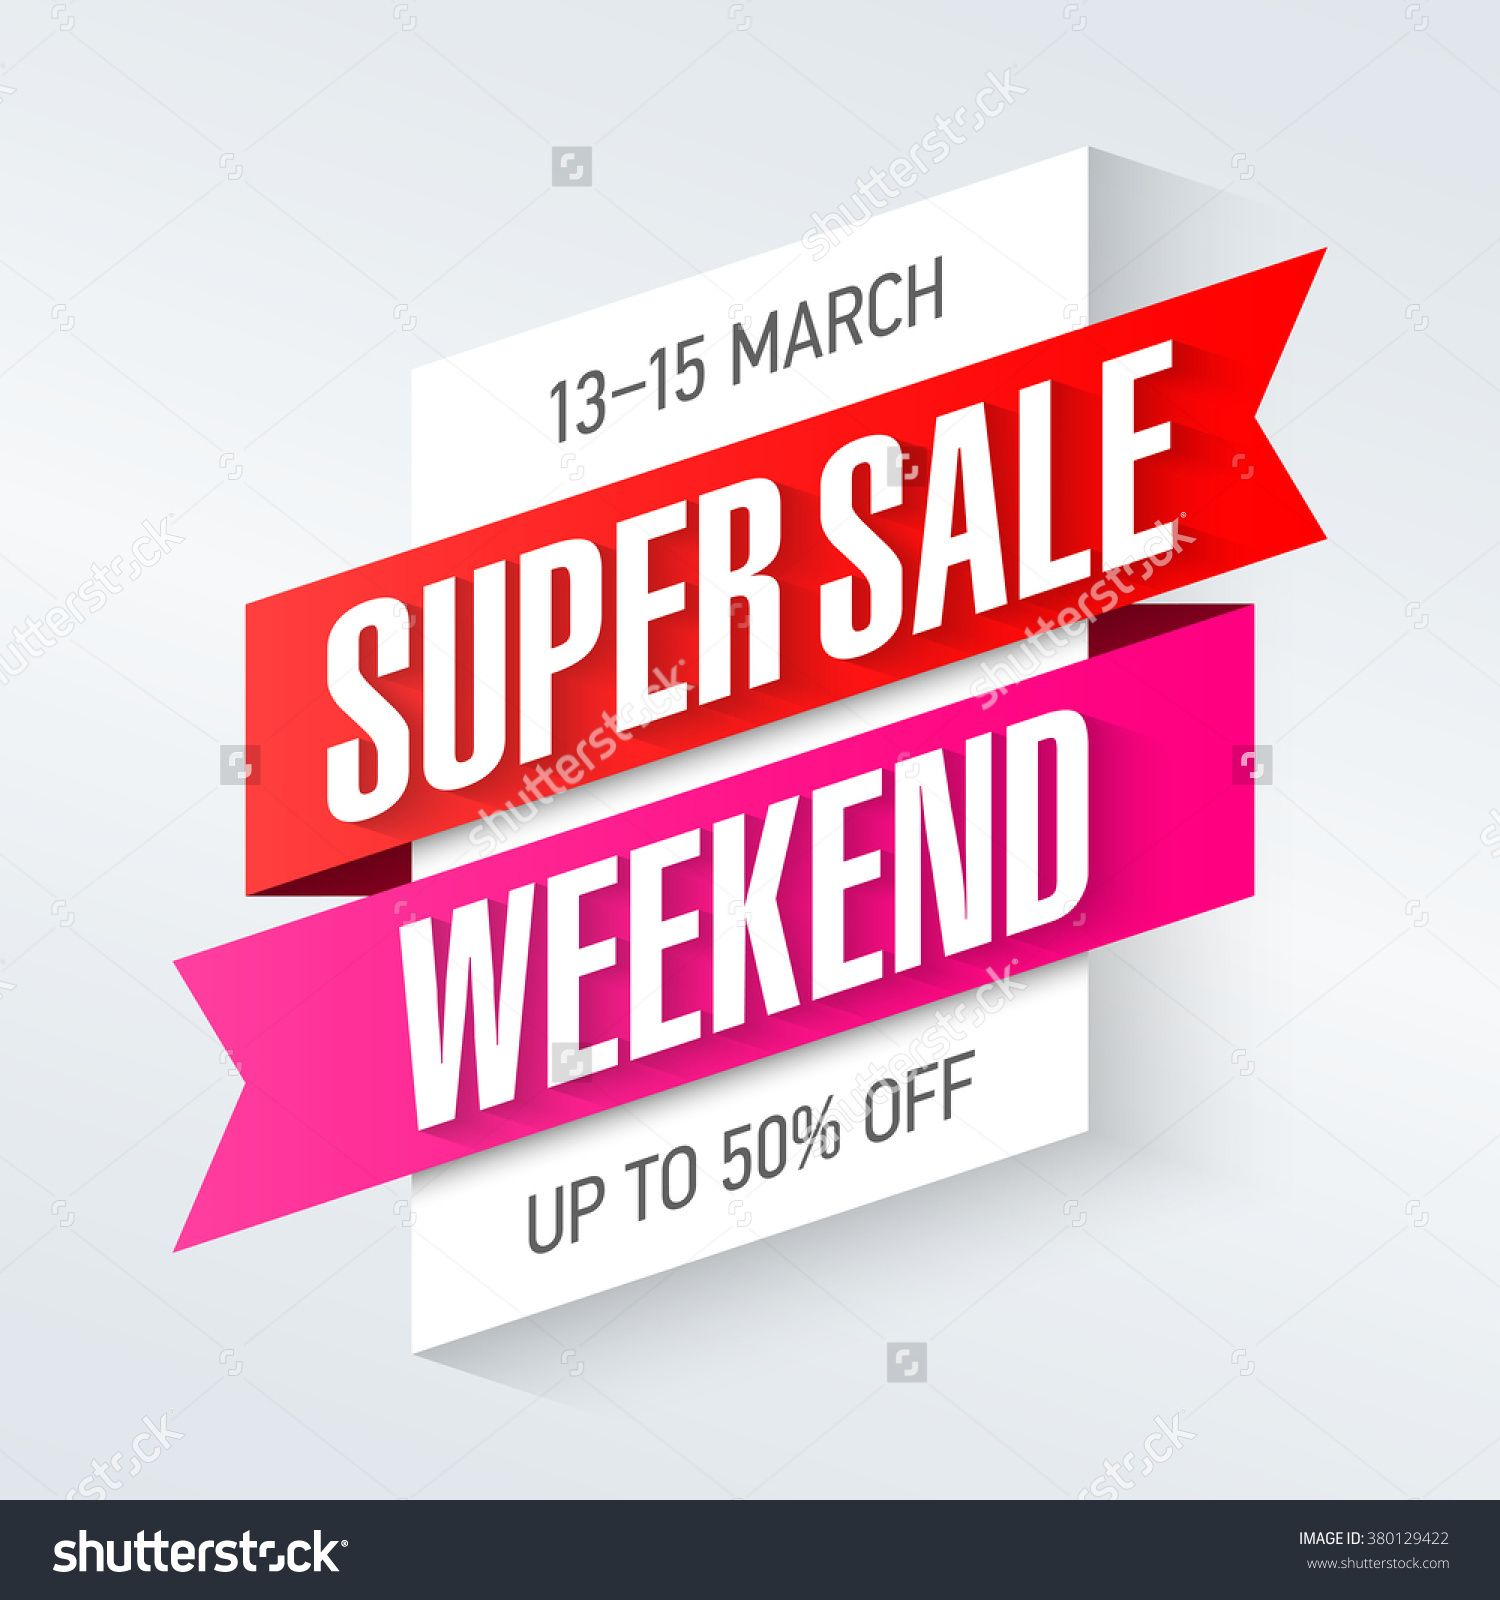 Weekend Sale Banner: Super Sale Weekend Special Offer Poster, Banner Background